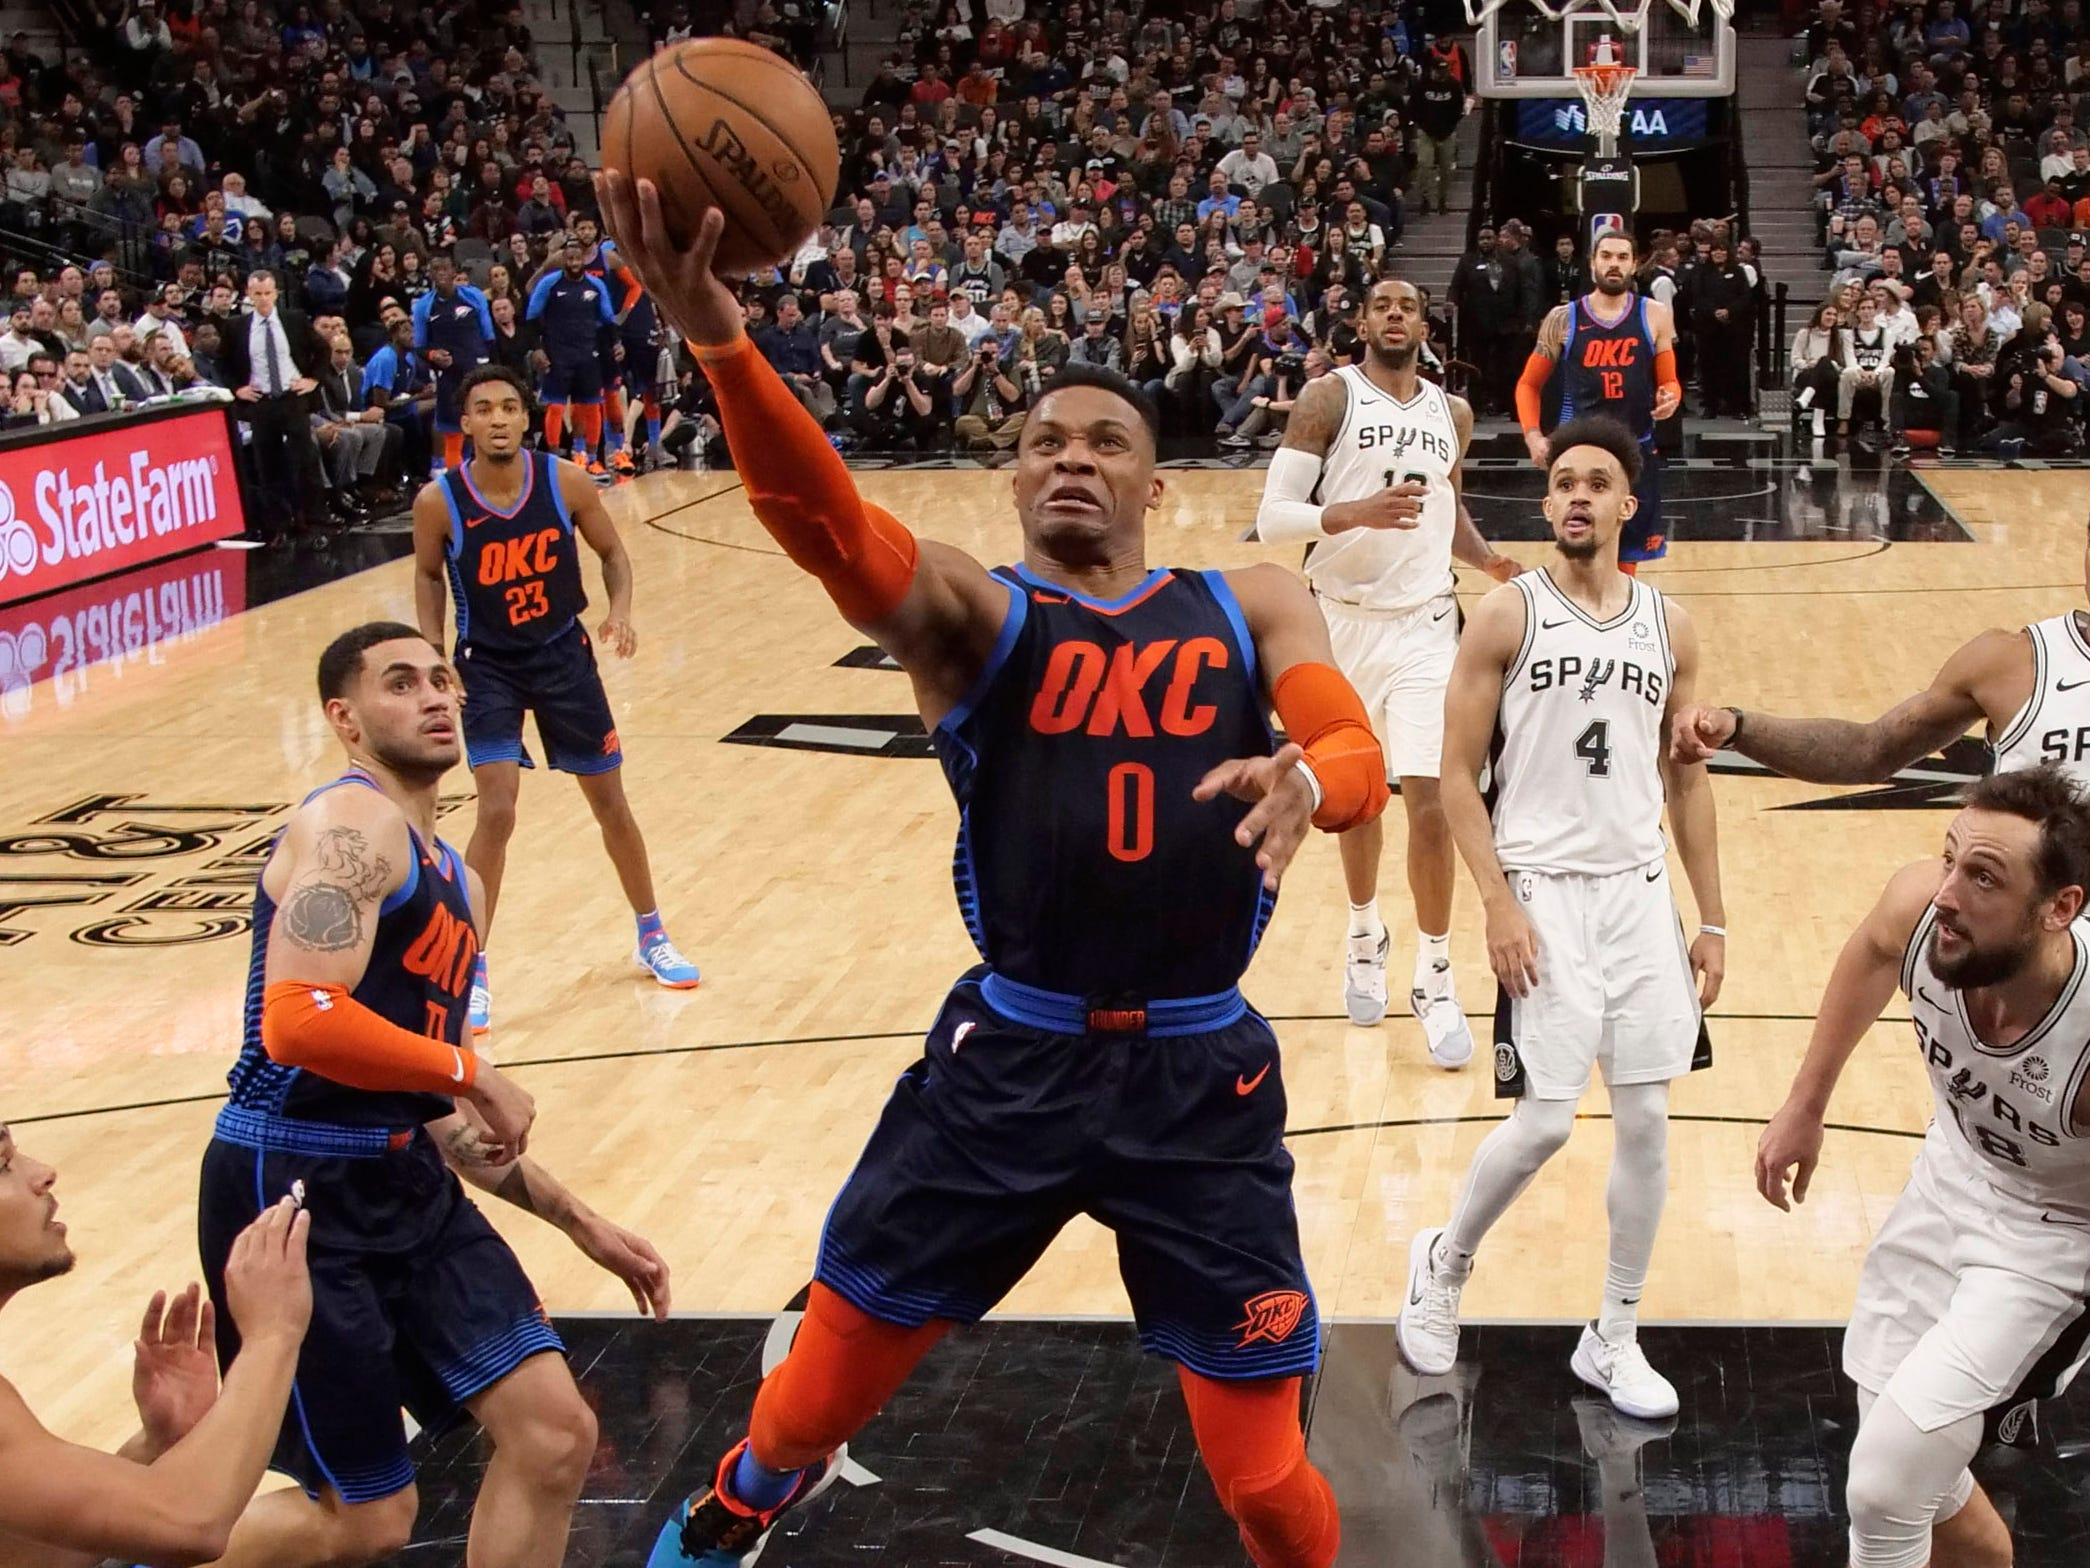 49. Russell Westbrook, Thunder (Jan. 10): 24 points, 24 assists, 13 rebounds in 154-147 loss to Spurs (13th of season).